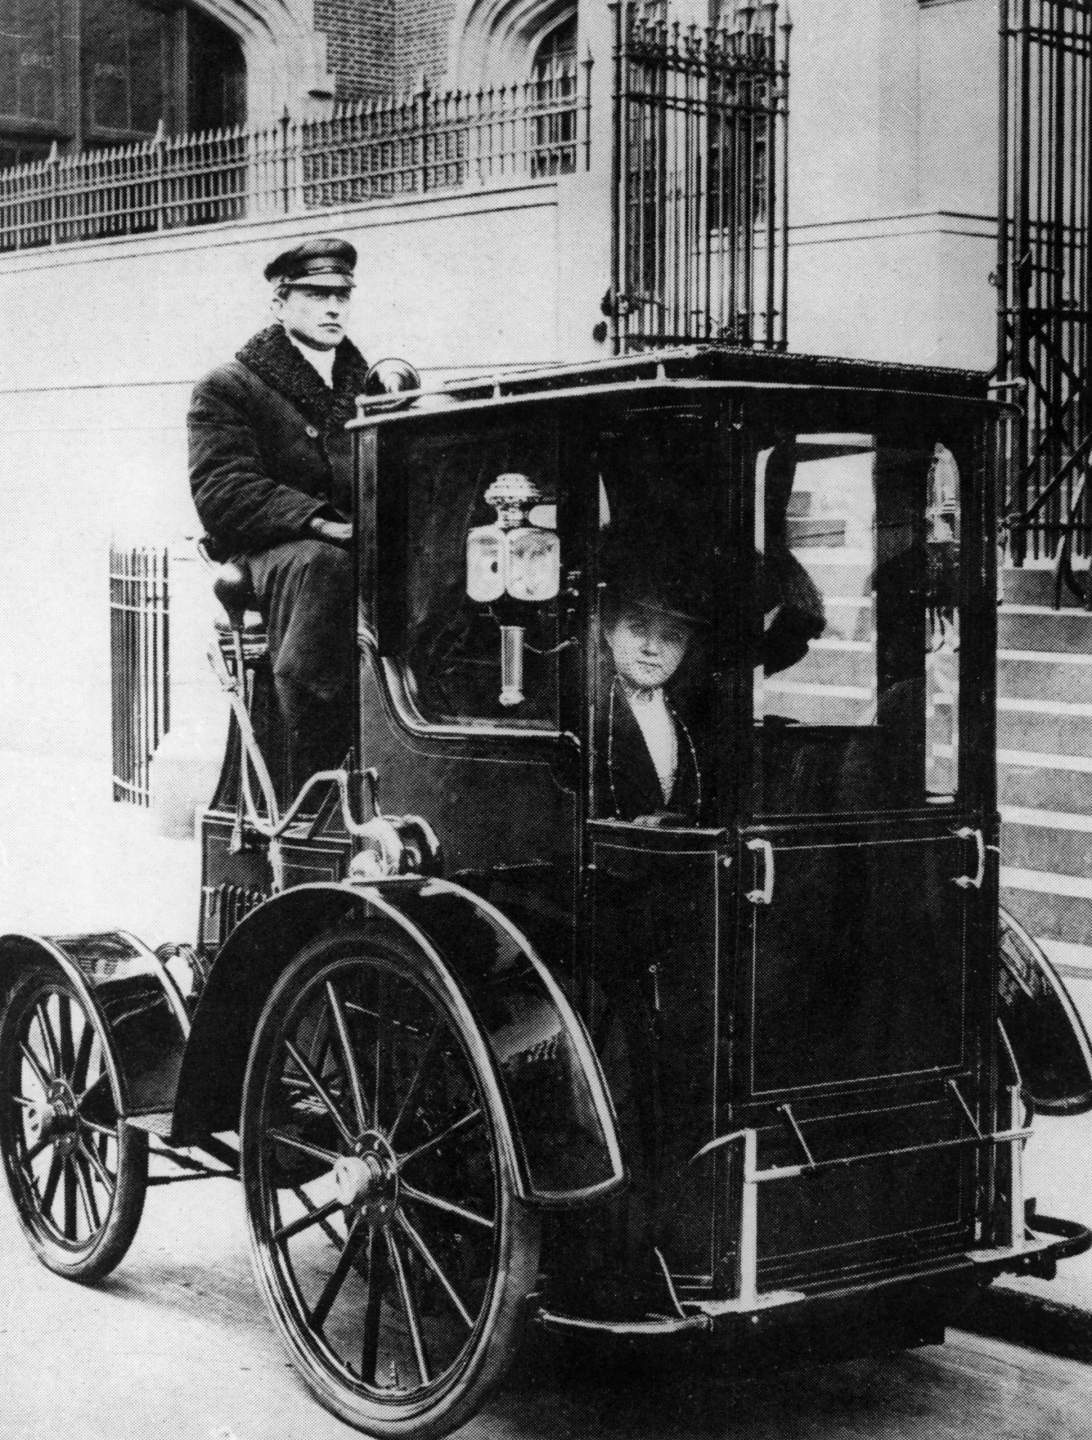 The First Metered Taxi Cab Hit The Streets 109 Years Ago